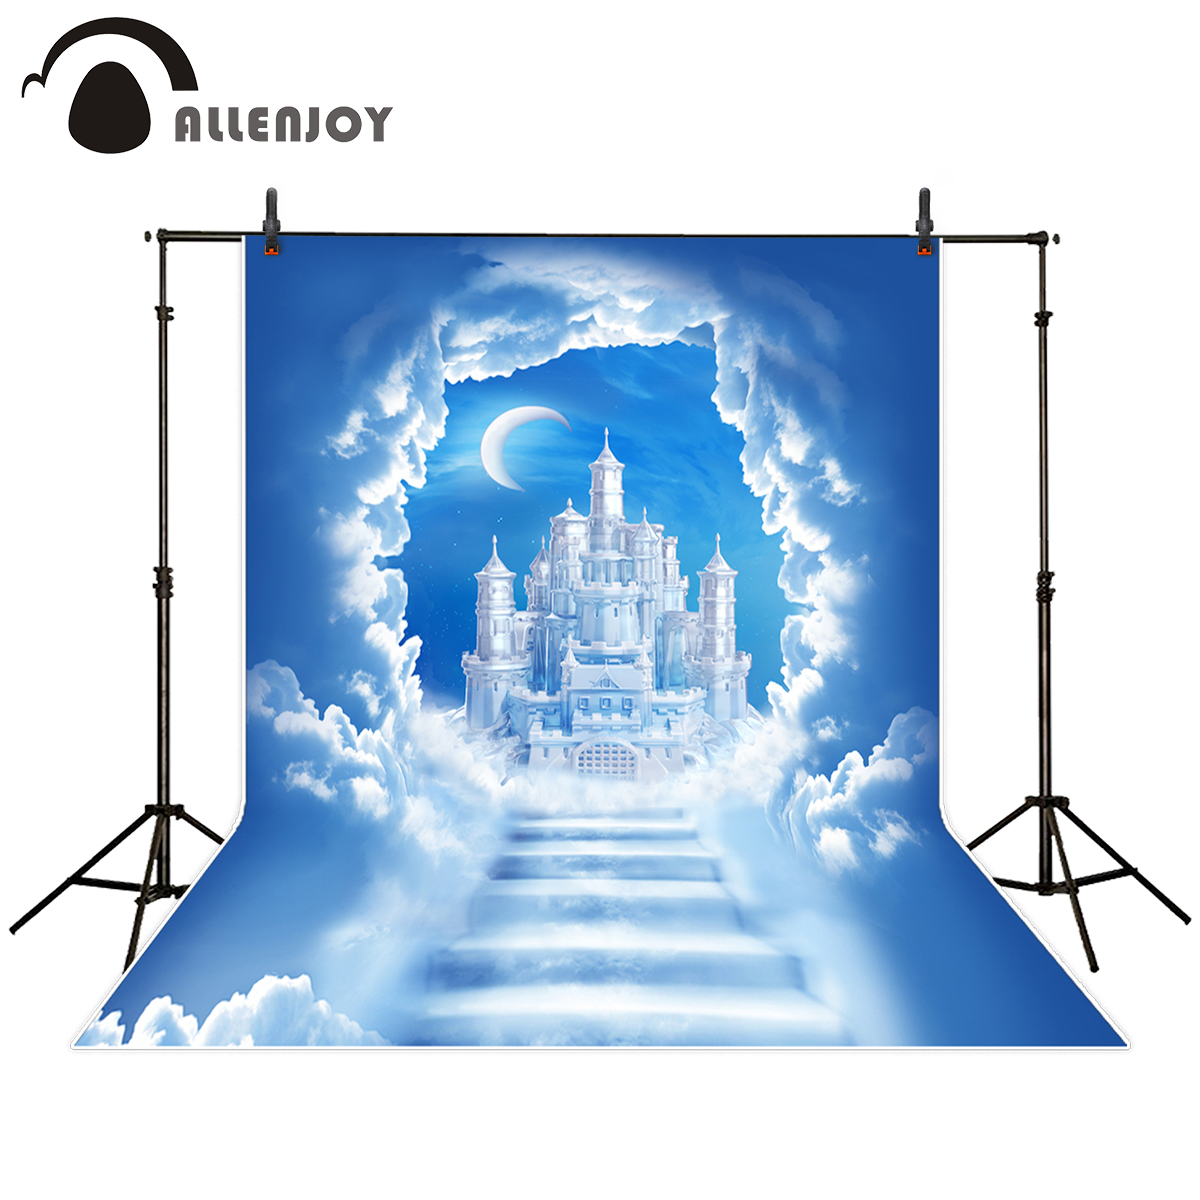 Allenjoy photography backdrop cloudy sky stair christmas moon ice castle background photo studio new design camera fotografica